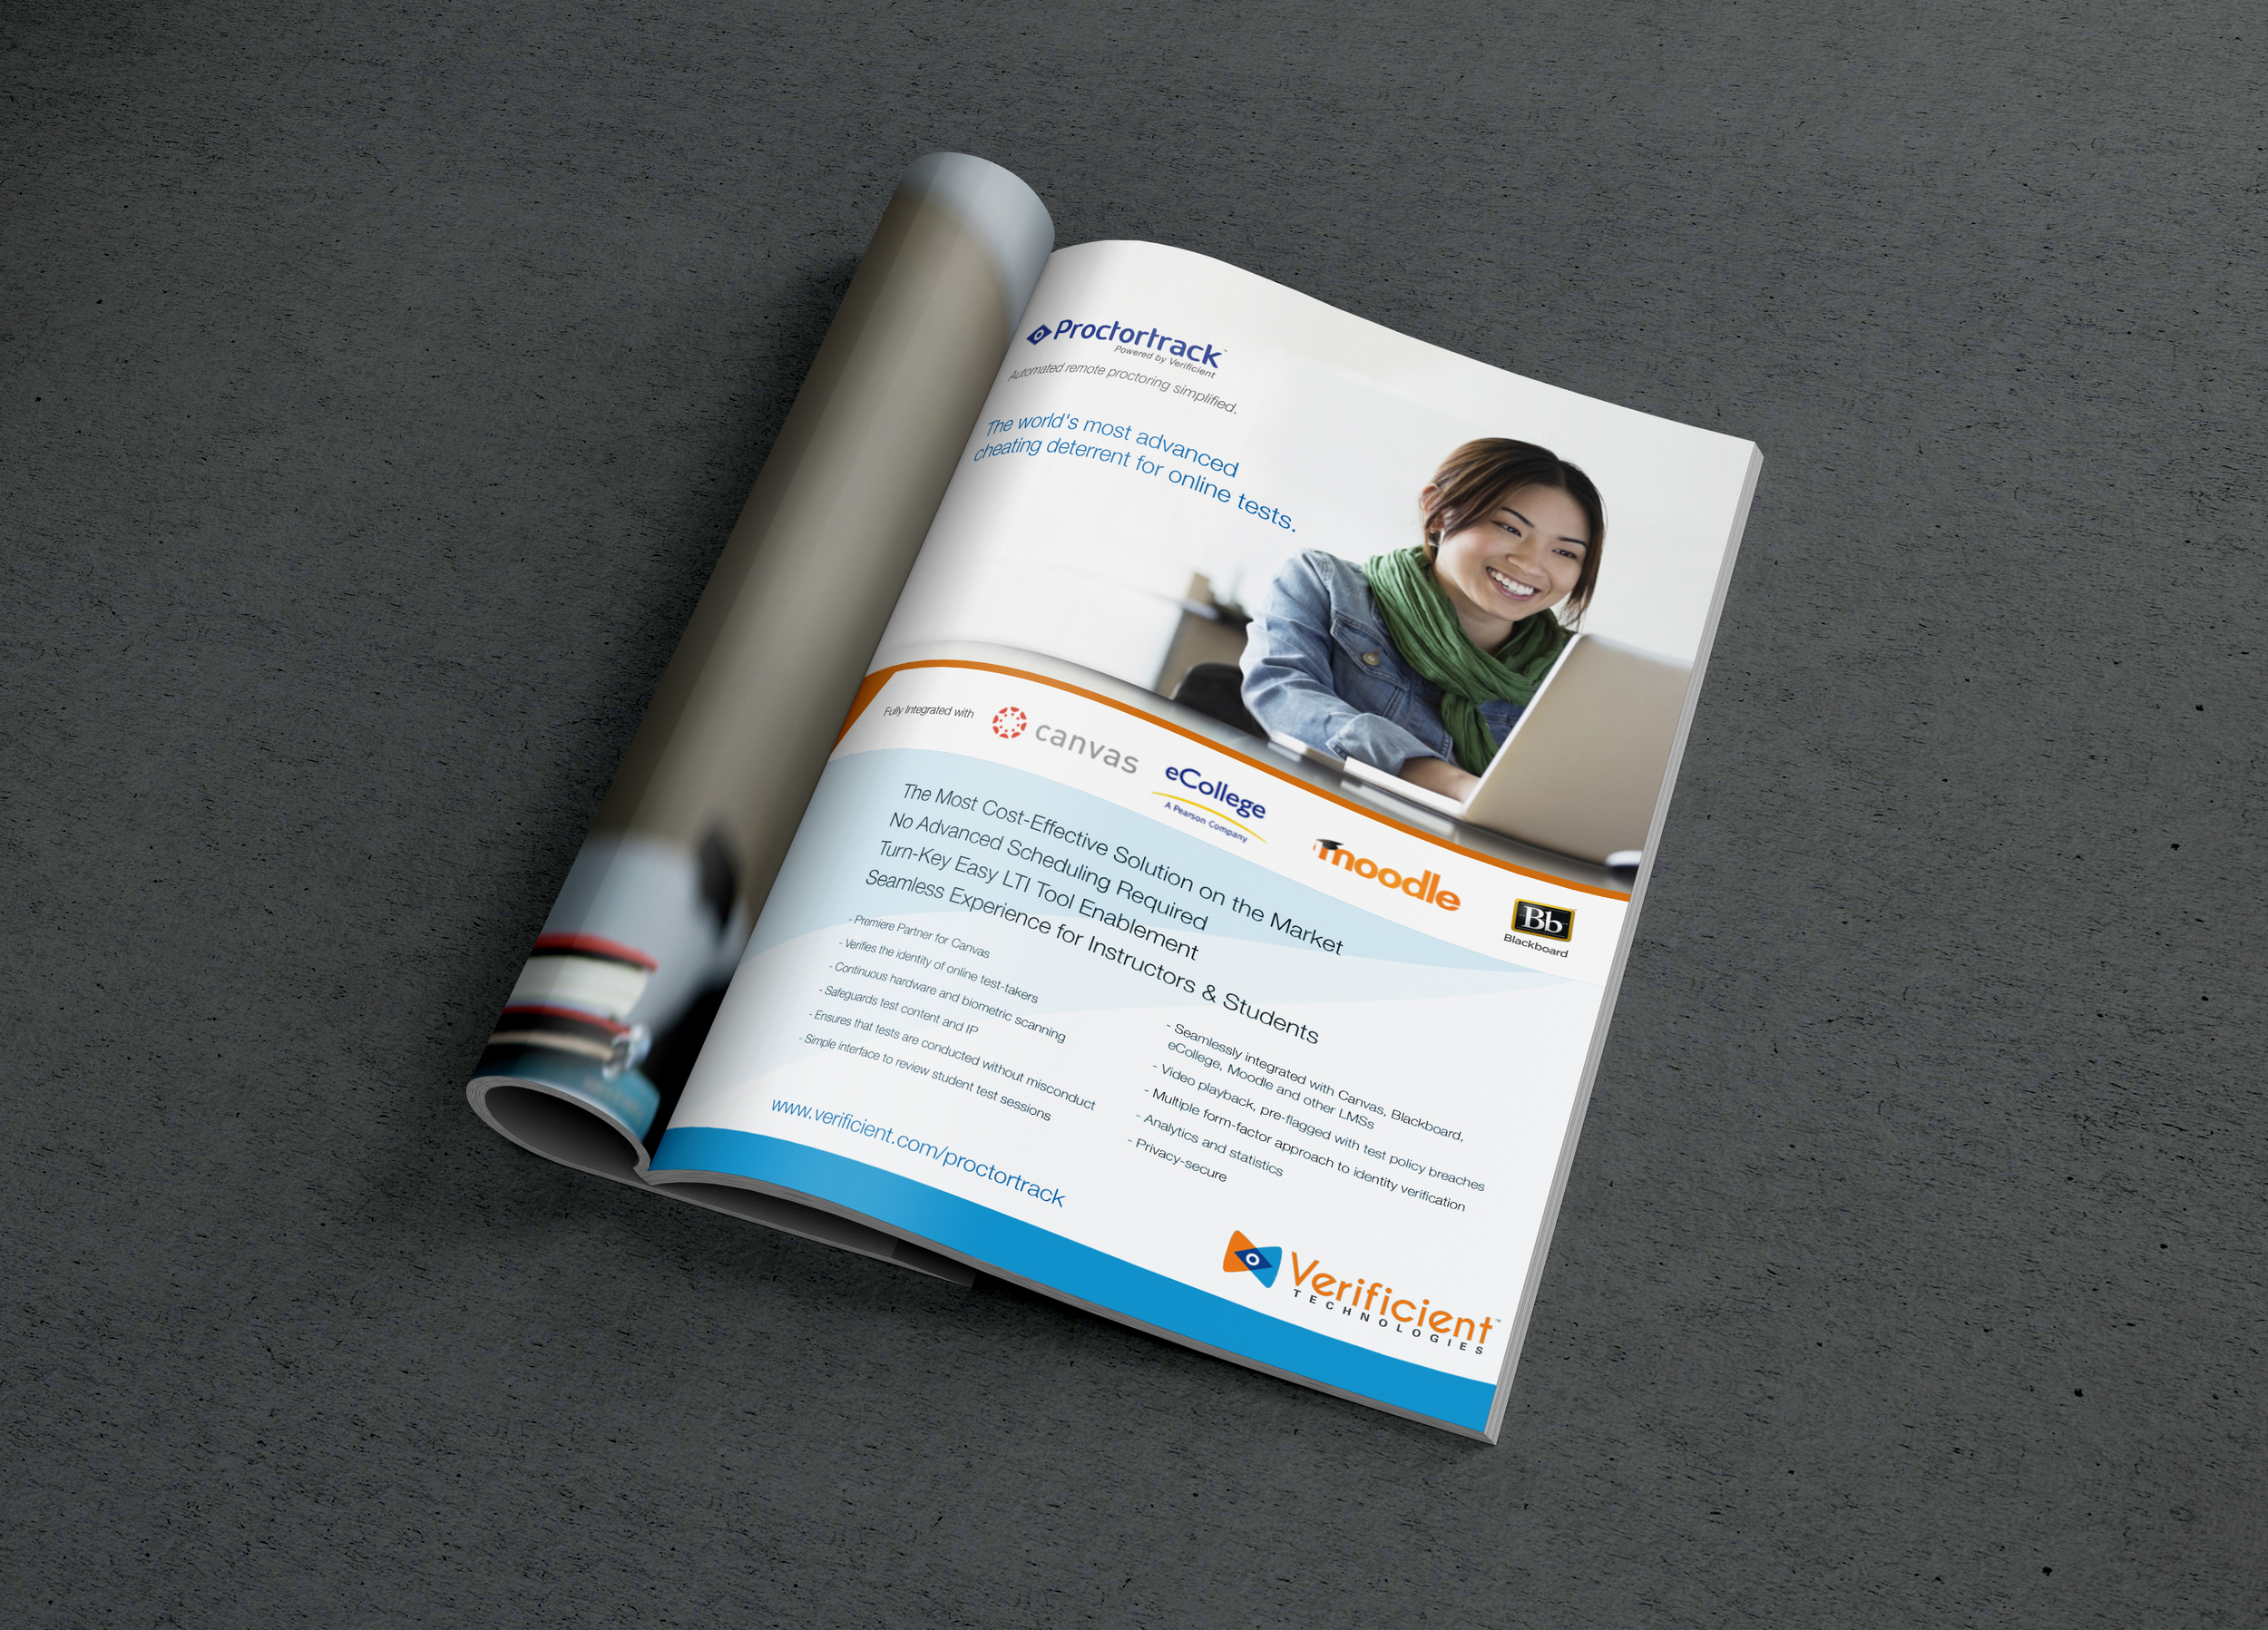 Verificient_Mockup_Brochure2.jpg